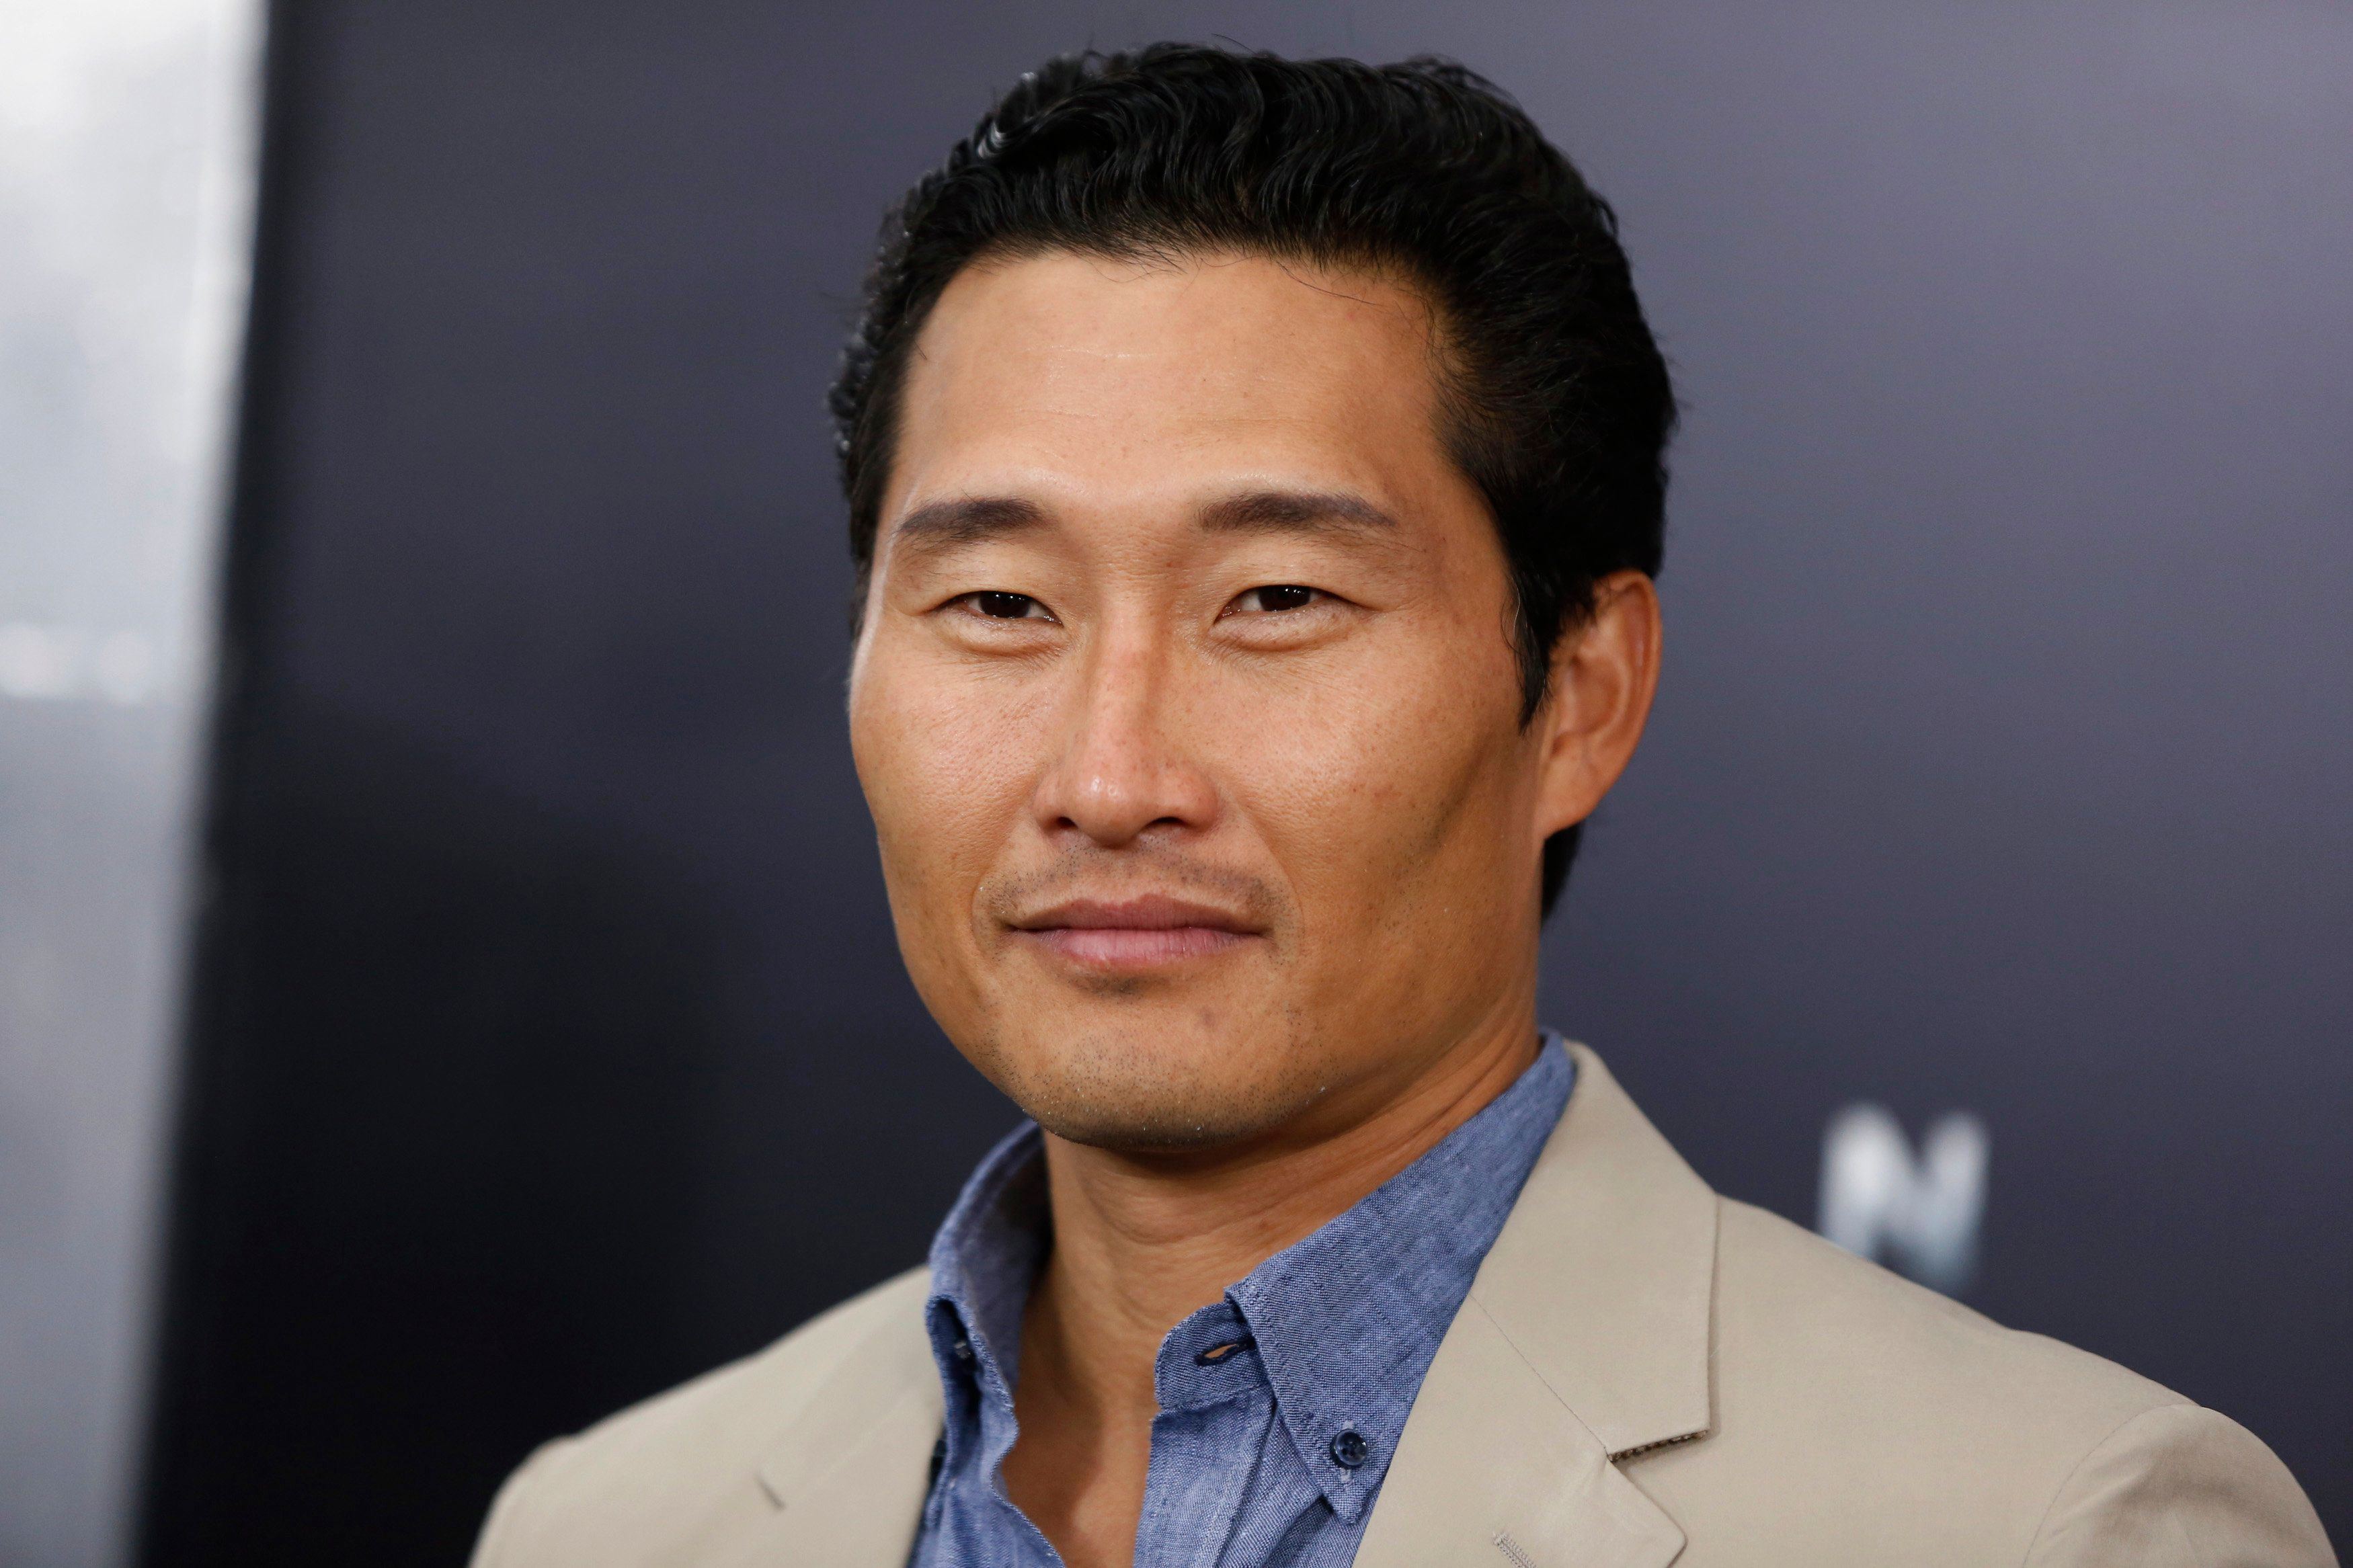 """Actor Daniel Dae Kim arrives for the world premiere of the film """"Man of Steel"""" in New York June 10, 2013. REUTERS/Lucas Jackson (UNITED STATES - Tags: ENTERTAINMENT)"""